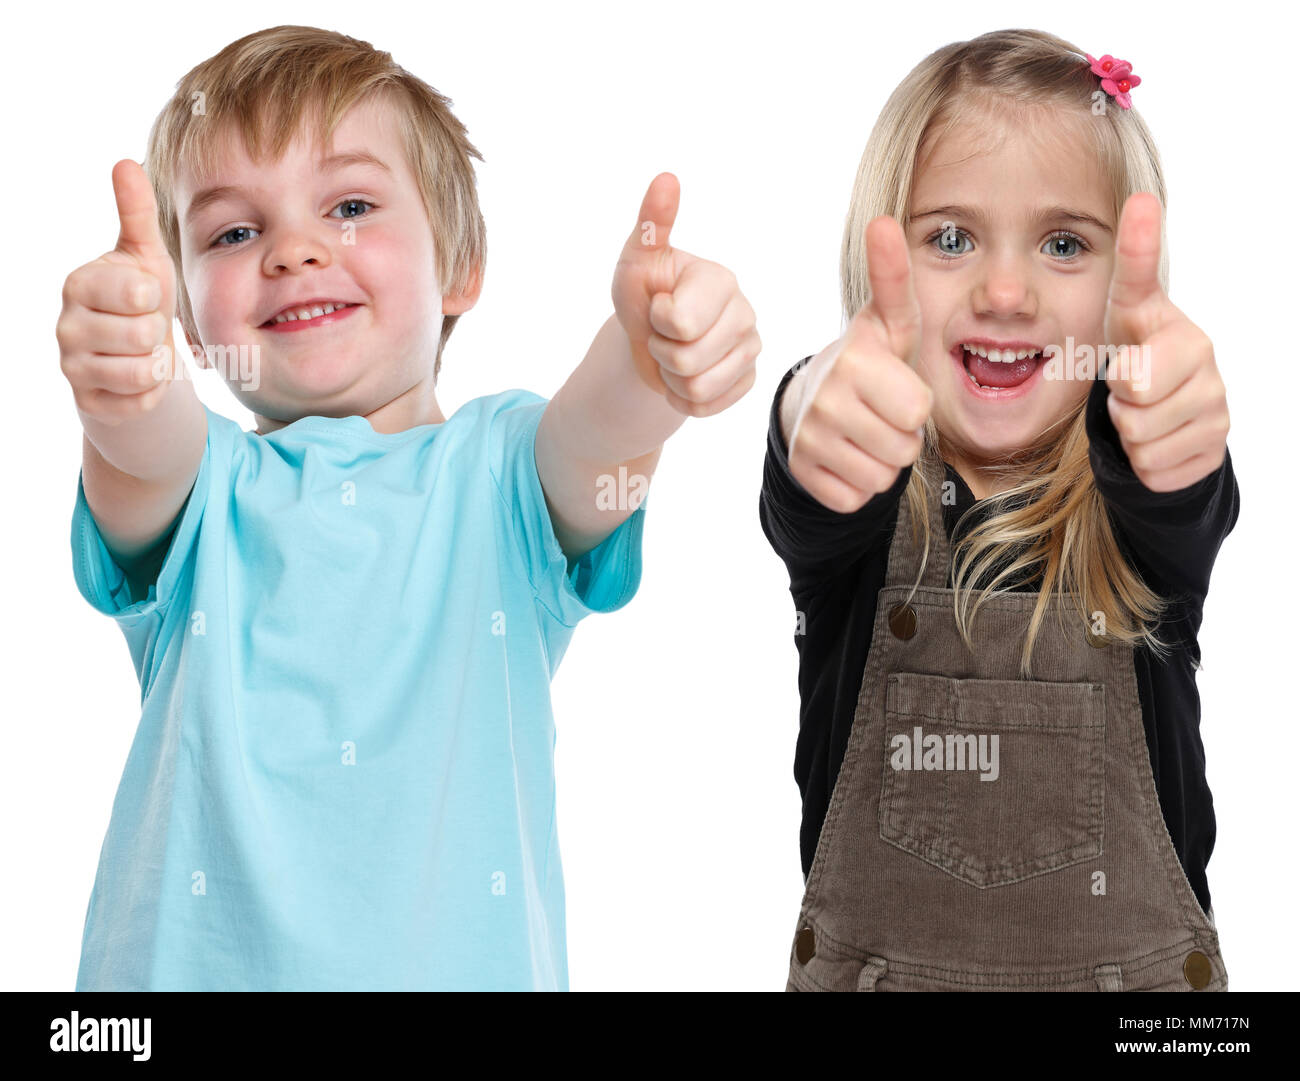 Children kids happy smiling success successful winner thumbs up isolated on a white background - Stock Image